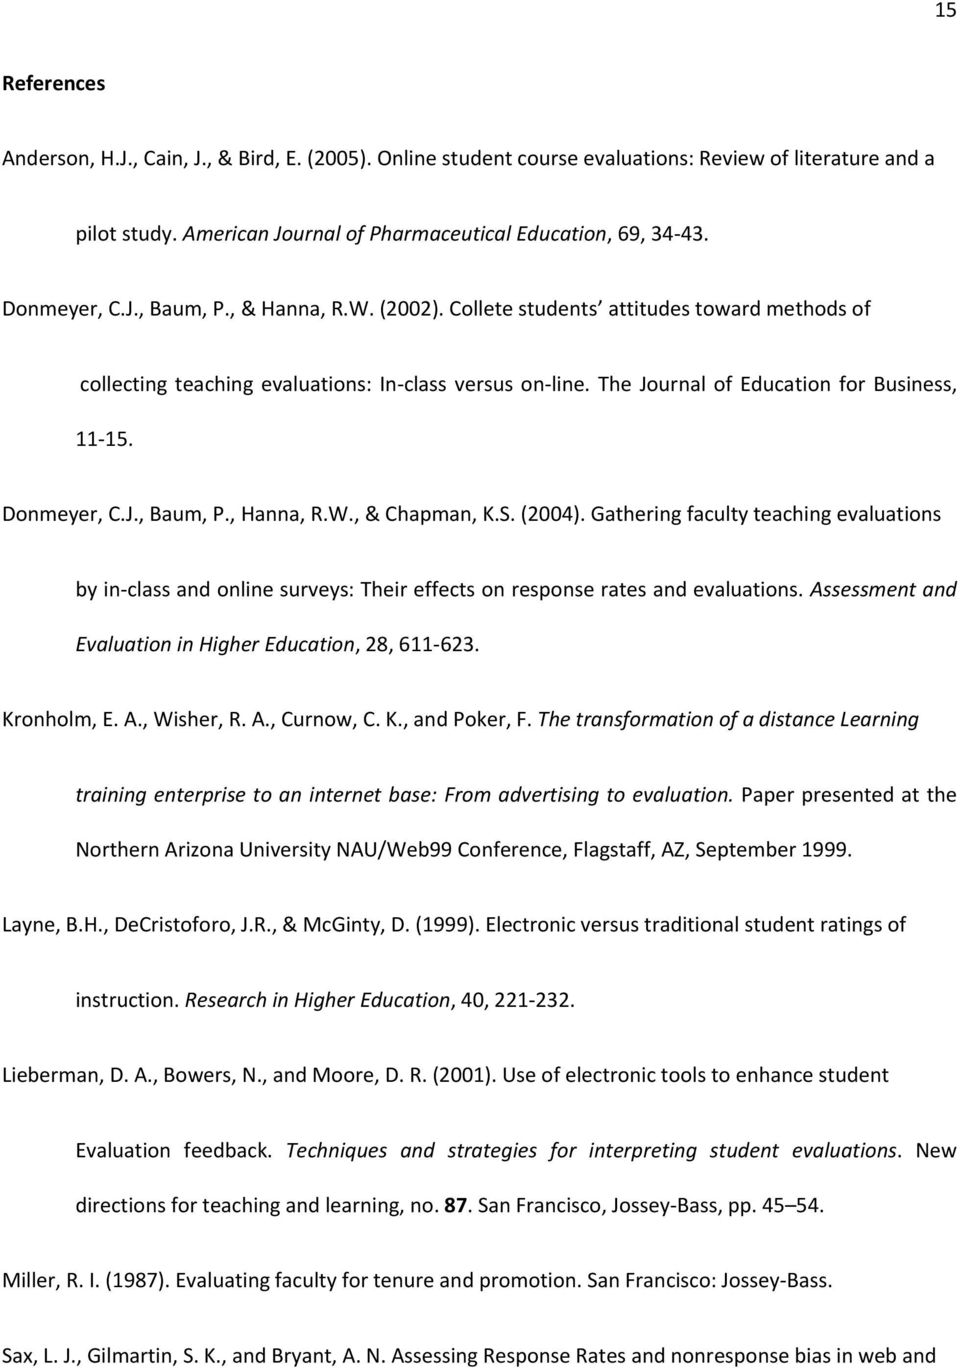 Donmeyer, C.J., Baum, P., Hanna, R.W., & Chapman, K.S. (2004). Gathering faculty teaching evaluations by in-class and online surveys: Their effects on response rates and evaluations.